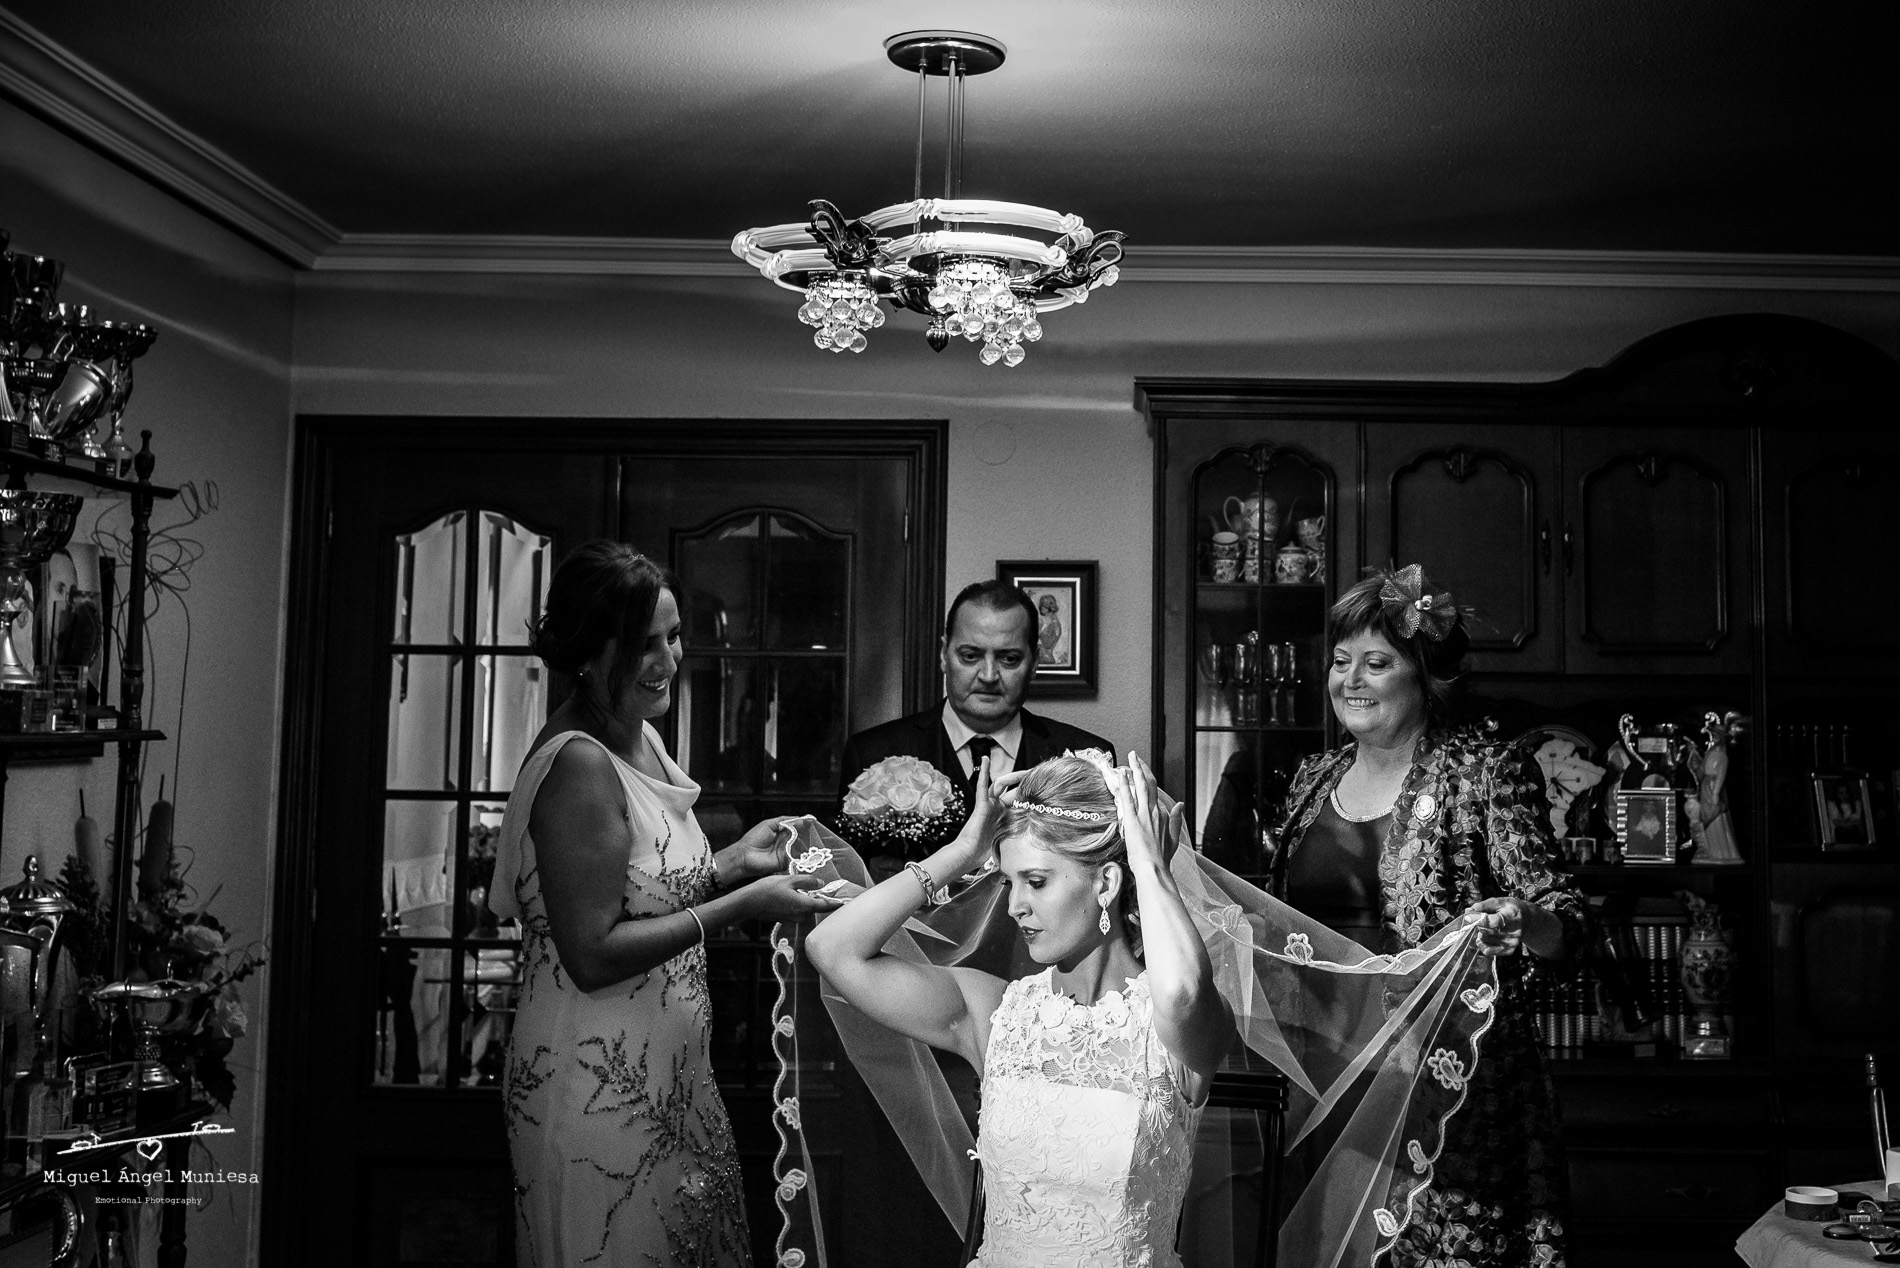 miguel angel muniesa, boda, fotografo de boda, boda zaragoza, wedding photographer, miguel angel muniesa emotional photography, destination wedding_19